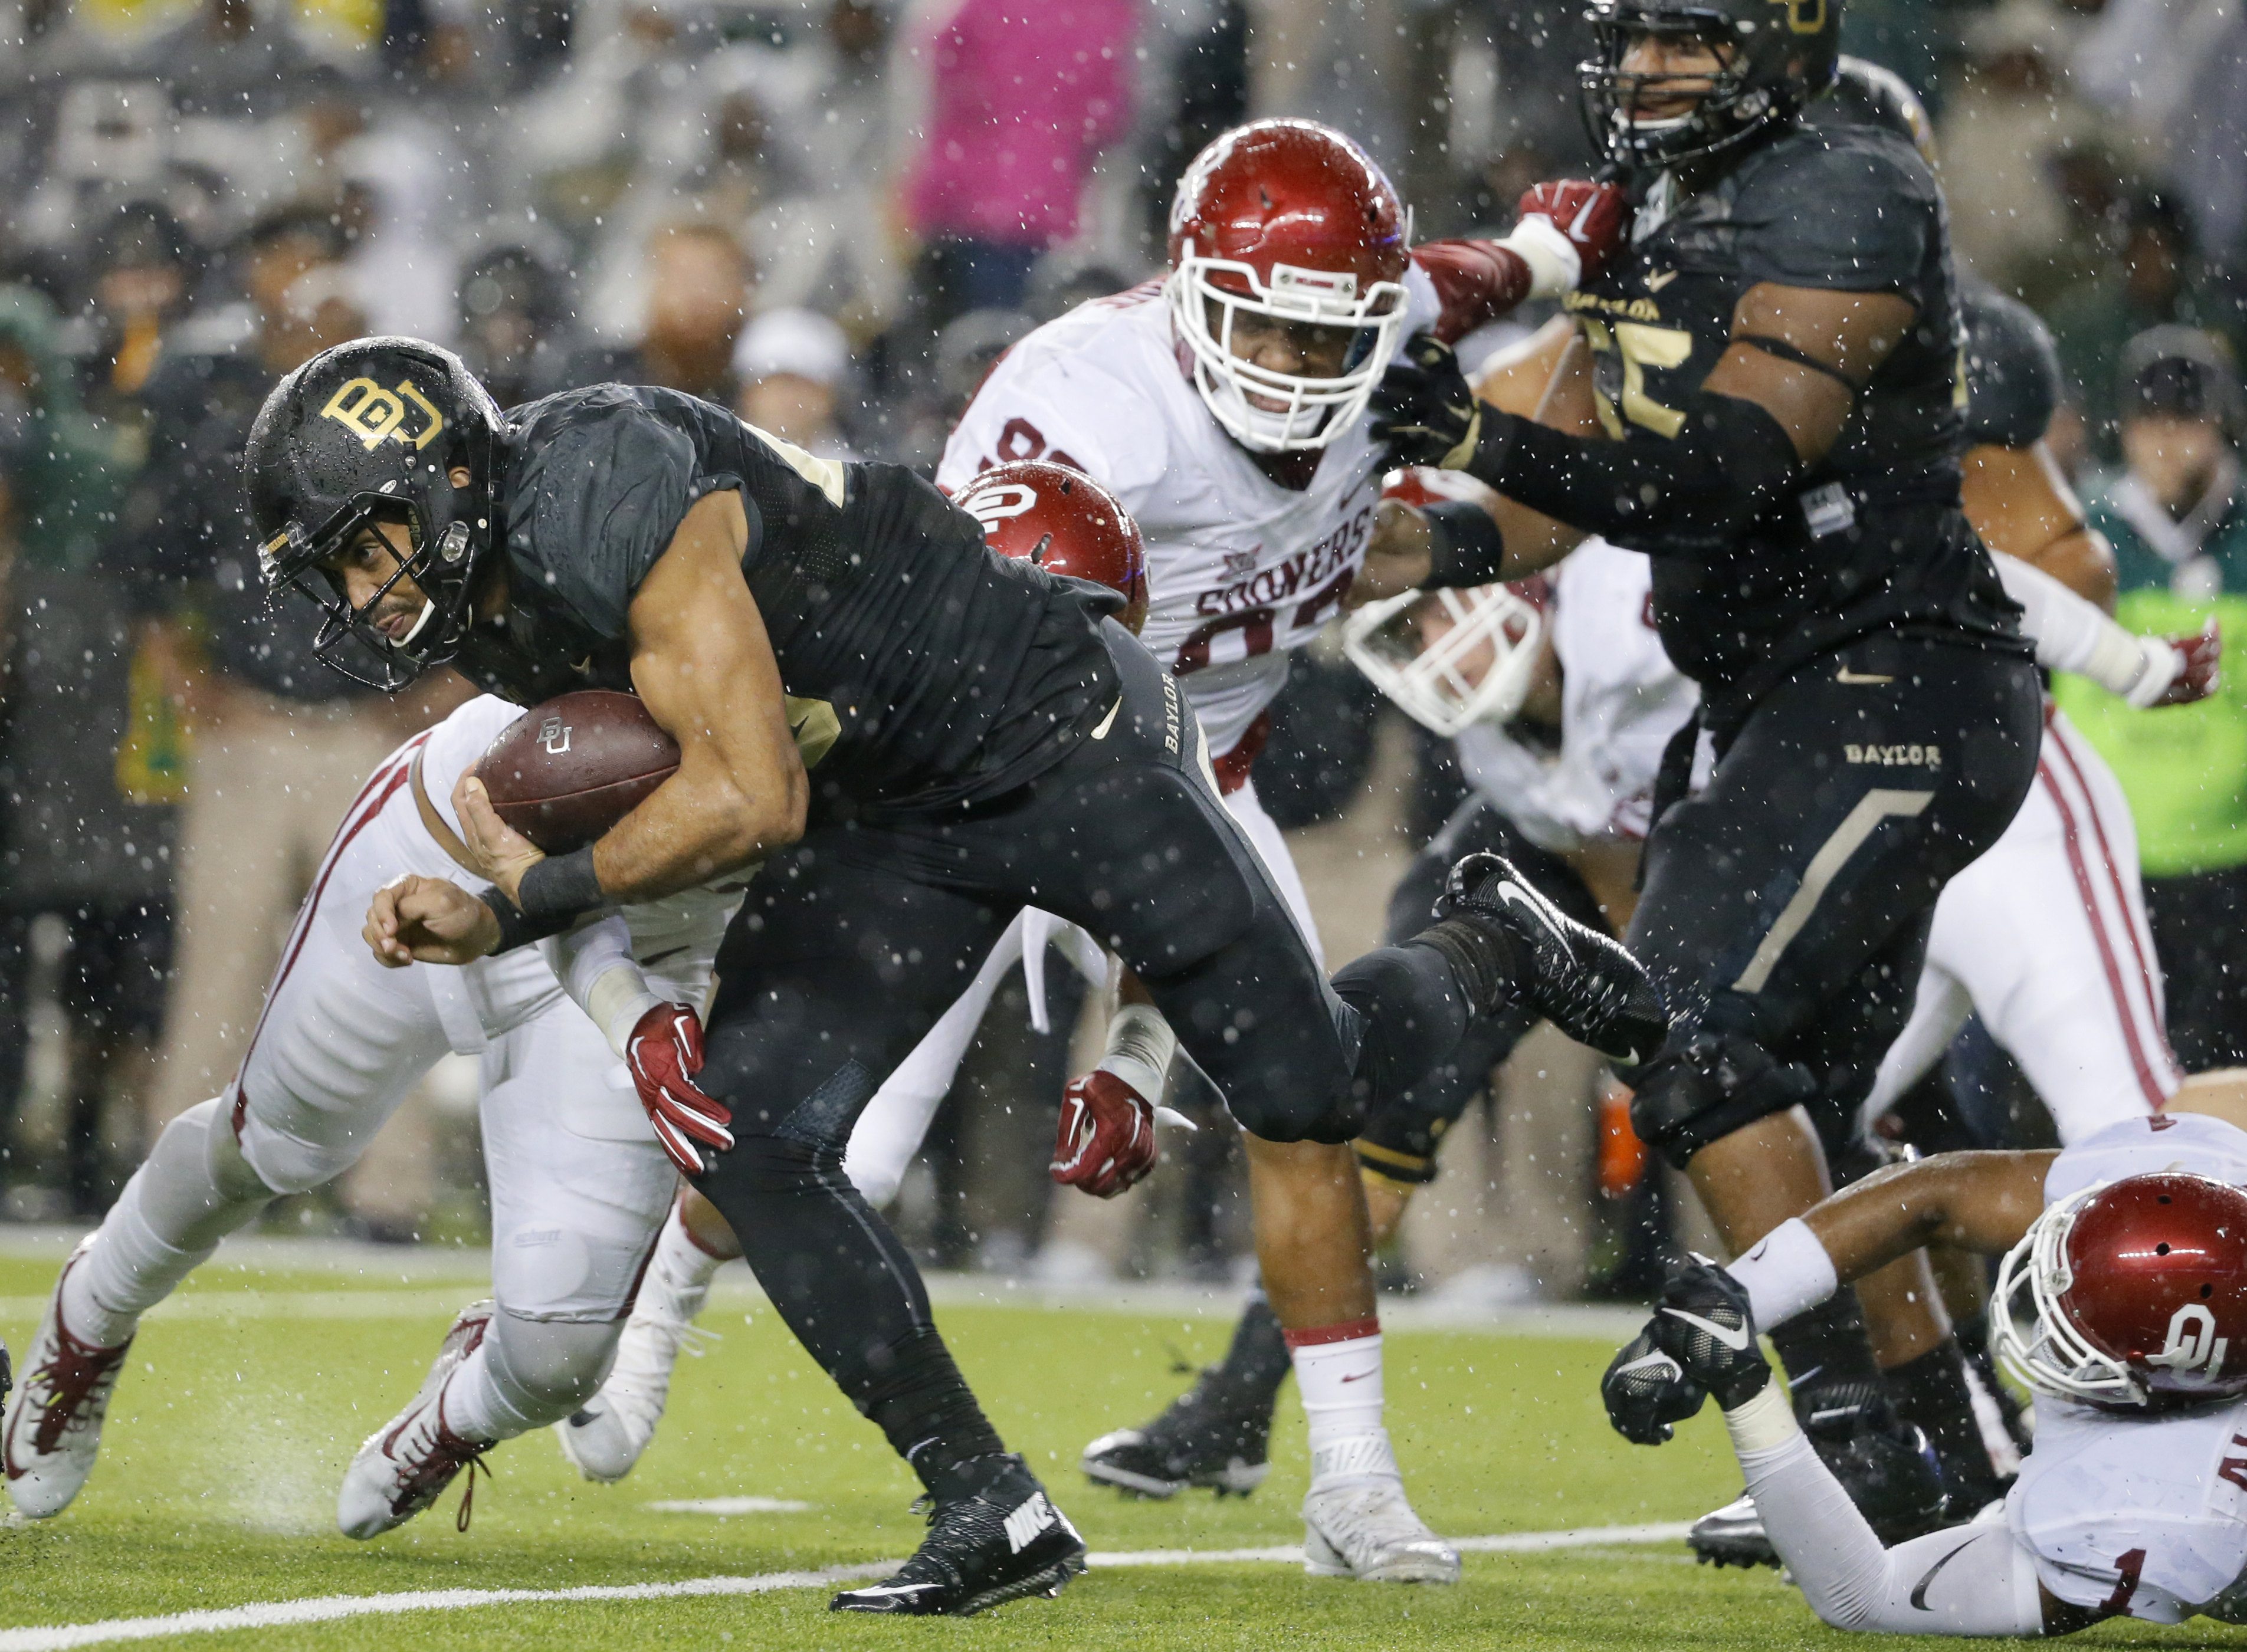 Baylor running back Devin Chafin breaks through Oklahoma tackles as he gains yardage on a running play in the first half of an NCAA college football game Saturday, Nov. 14, 2015, in Waco, Texas. (AP Photo/Tony Gutierrez)